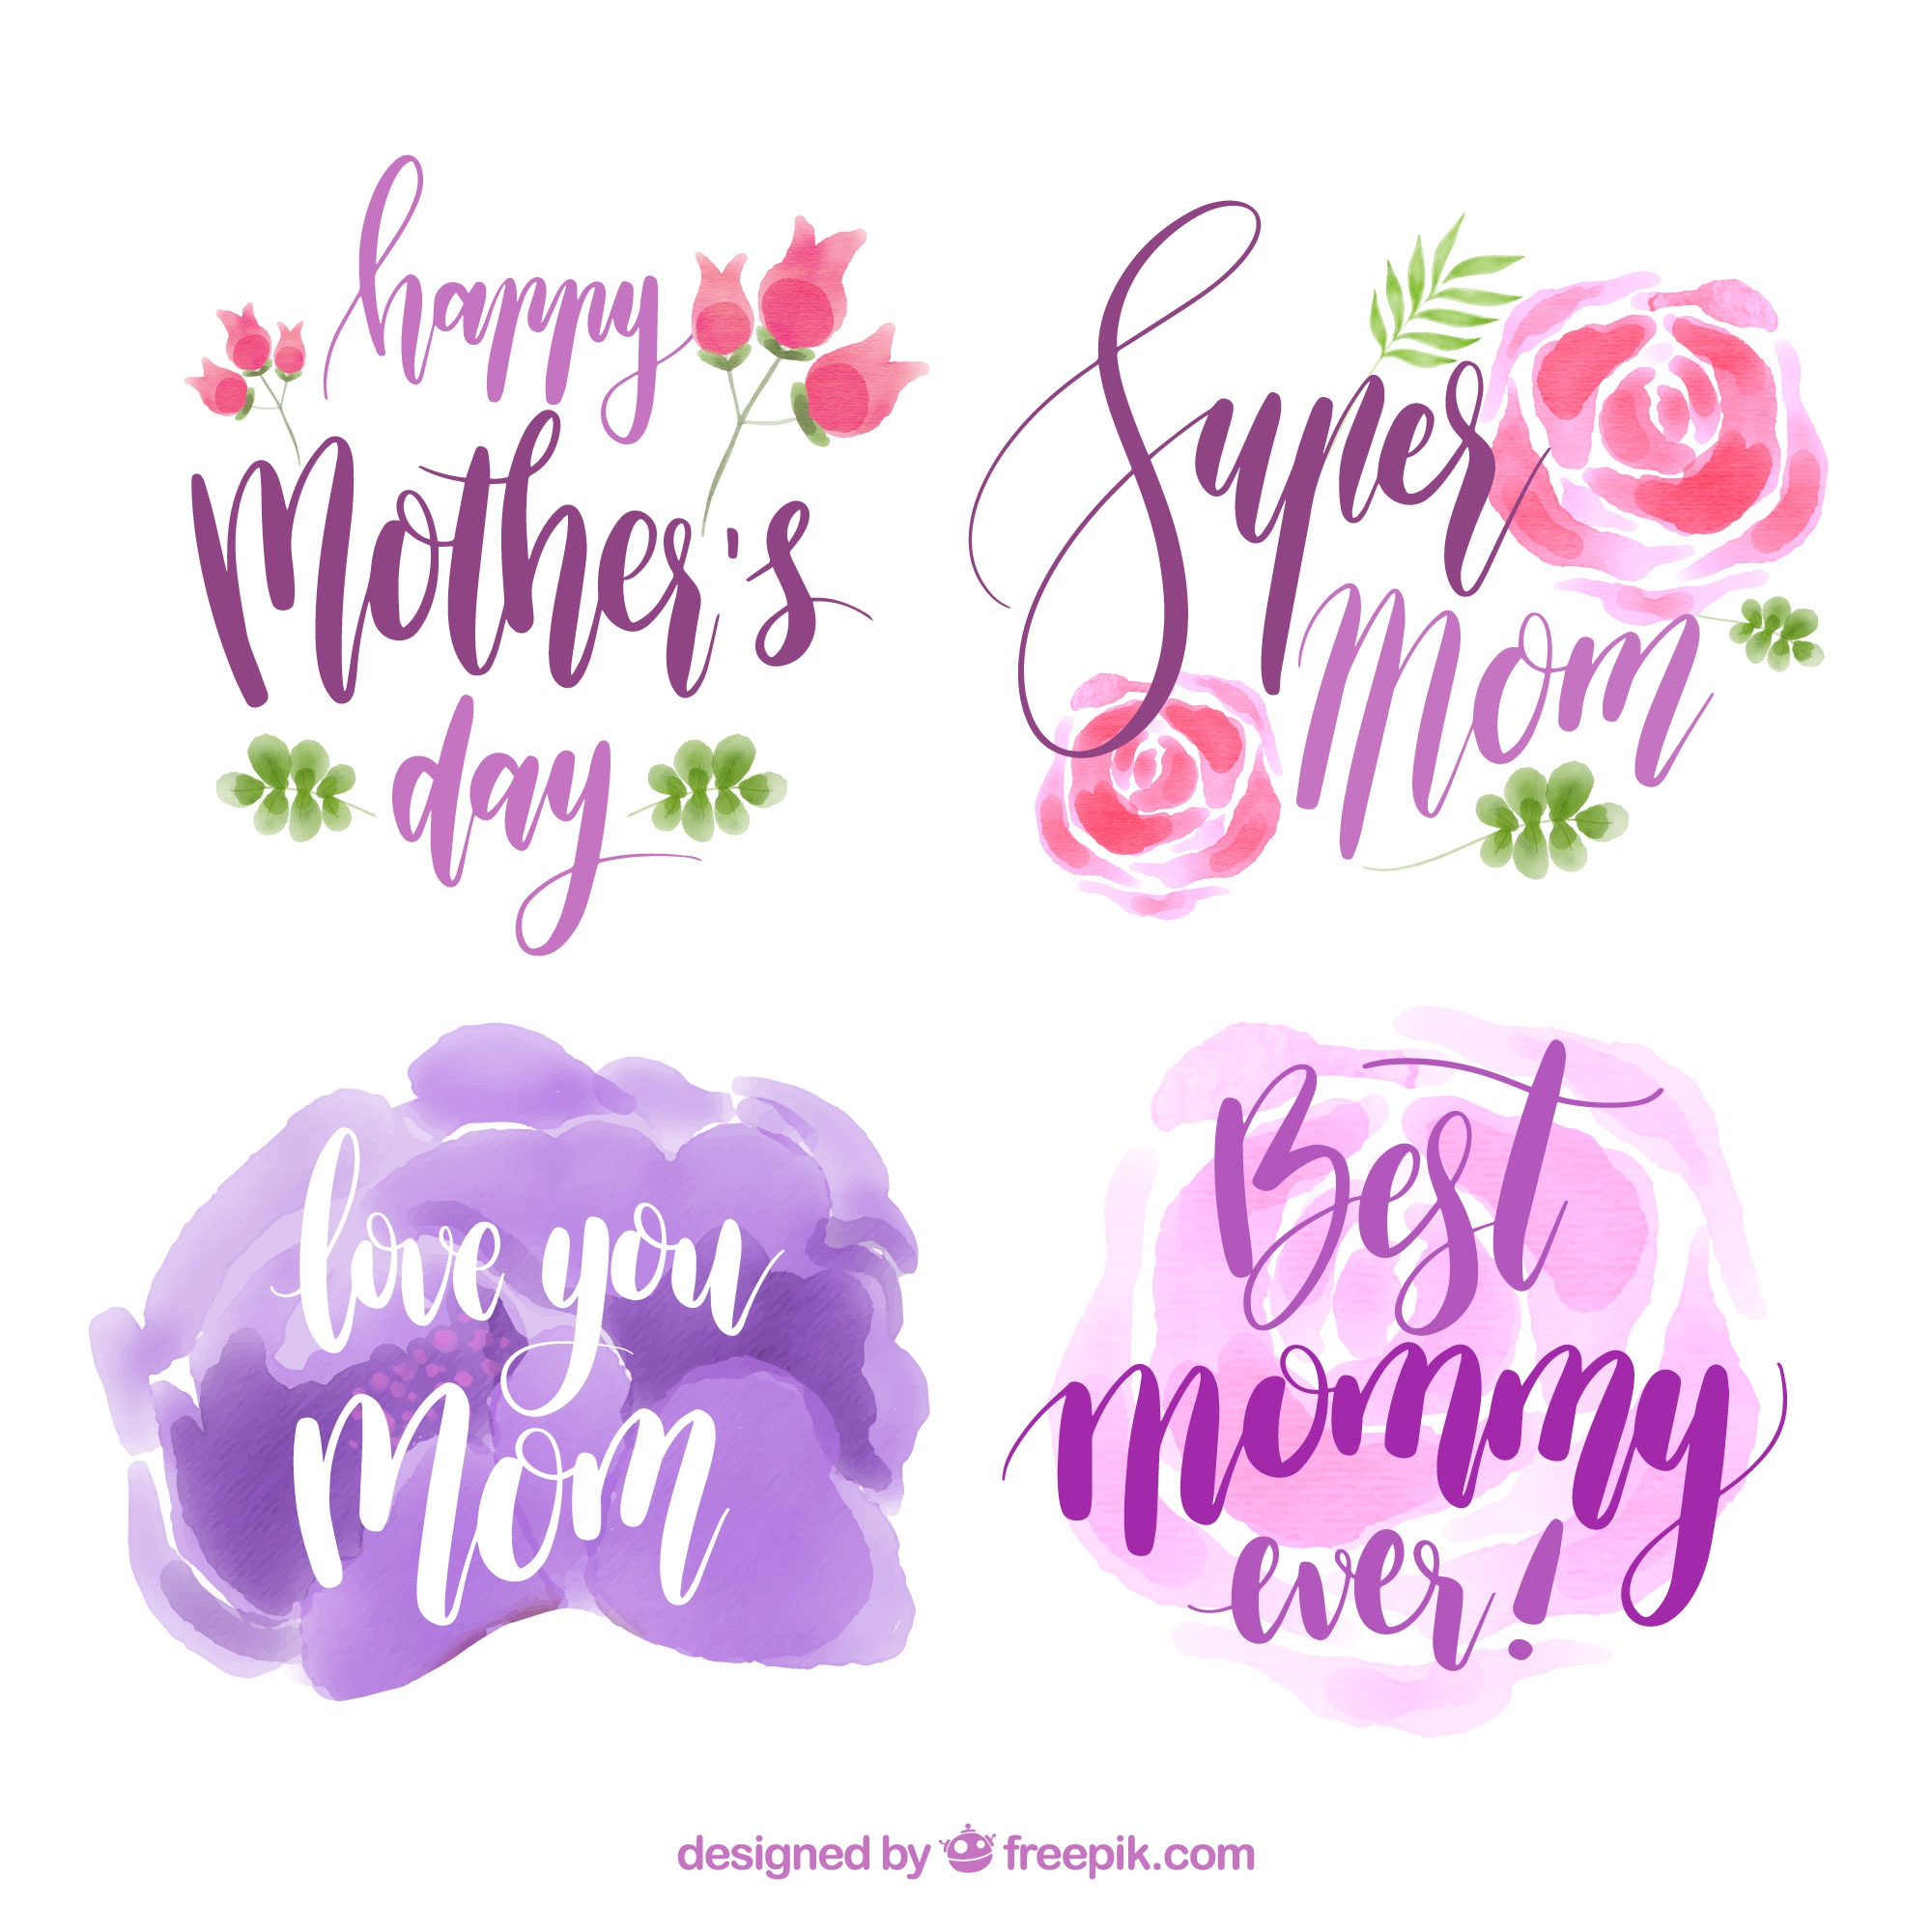 Colored mother's day labels in watercolor style